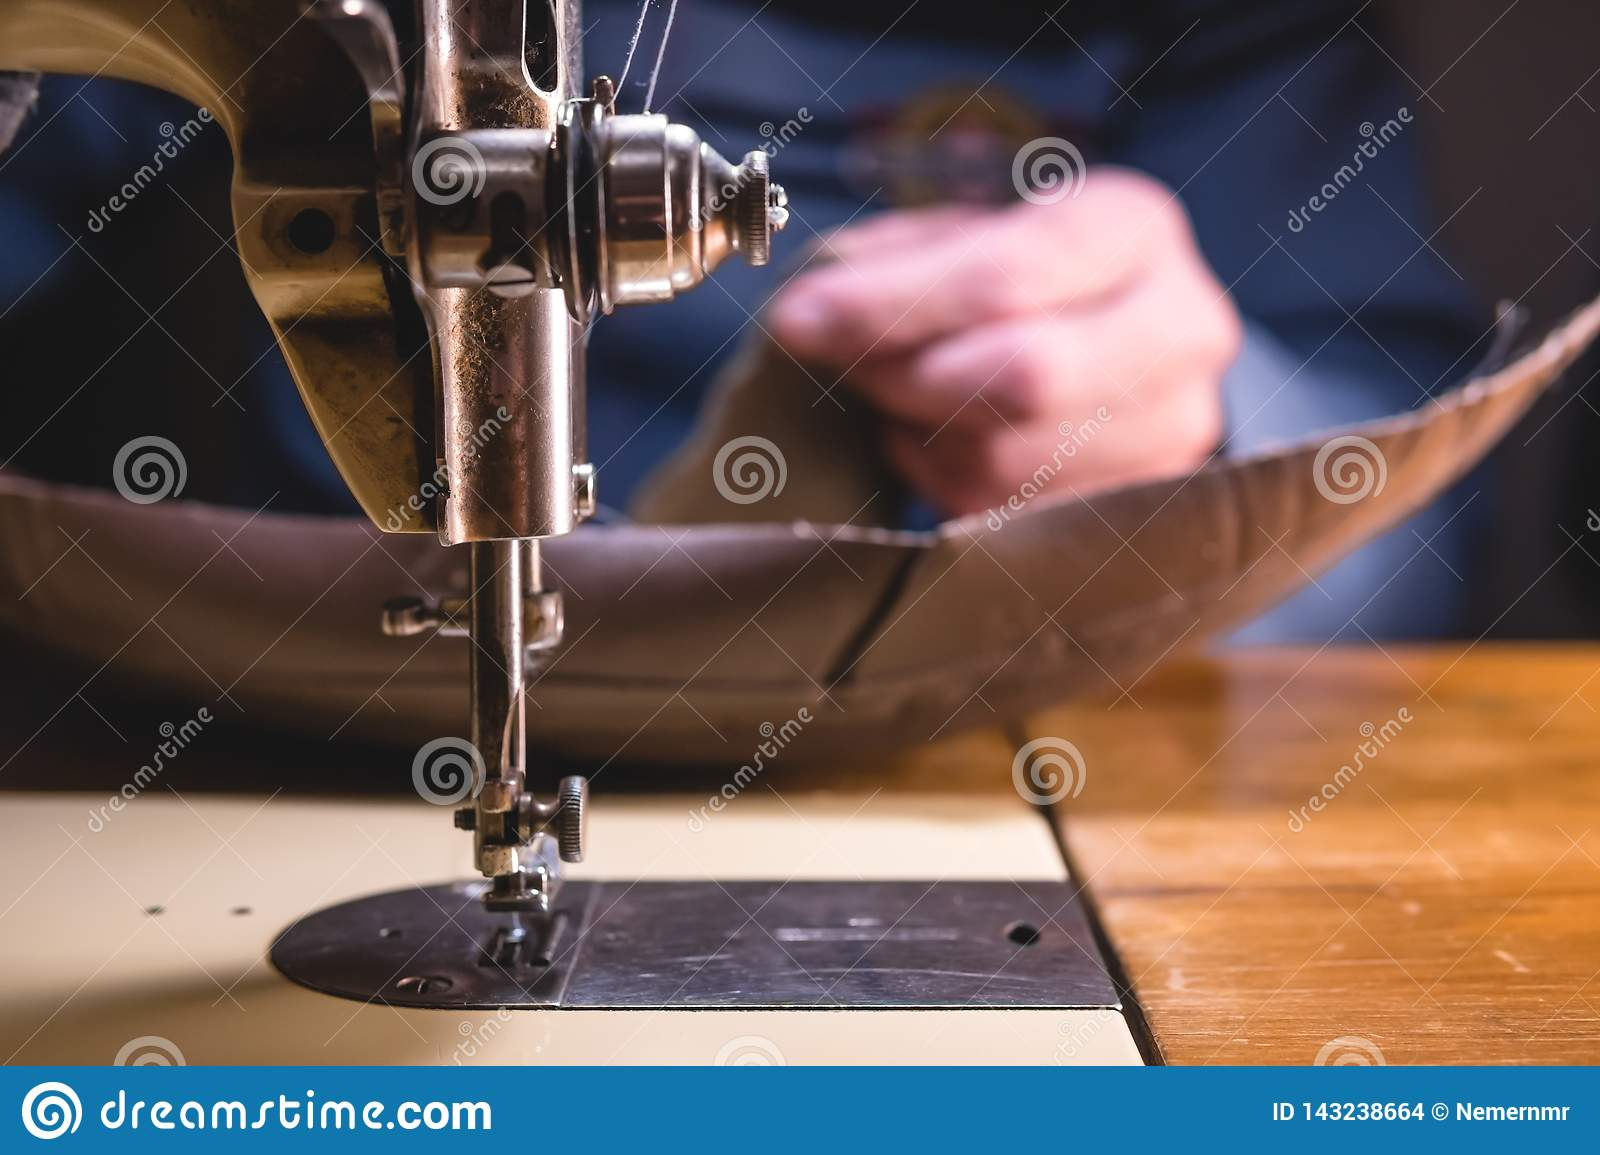 Sewing process of the leather belt. old Man`s hands behind sewing. Leather workshop. textile vintage sewing industrial